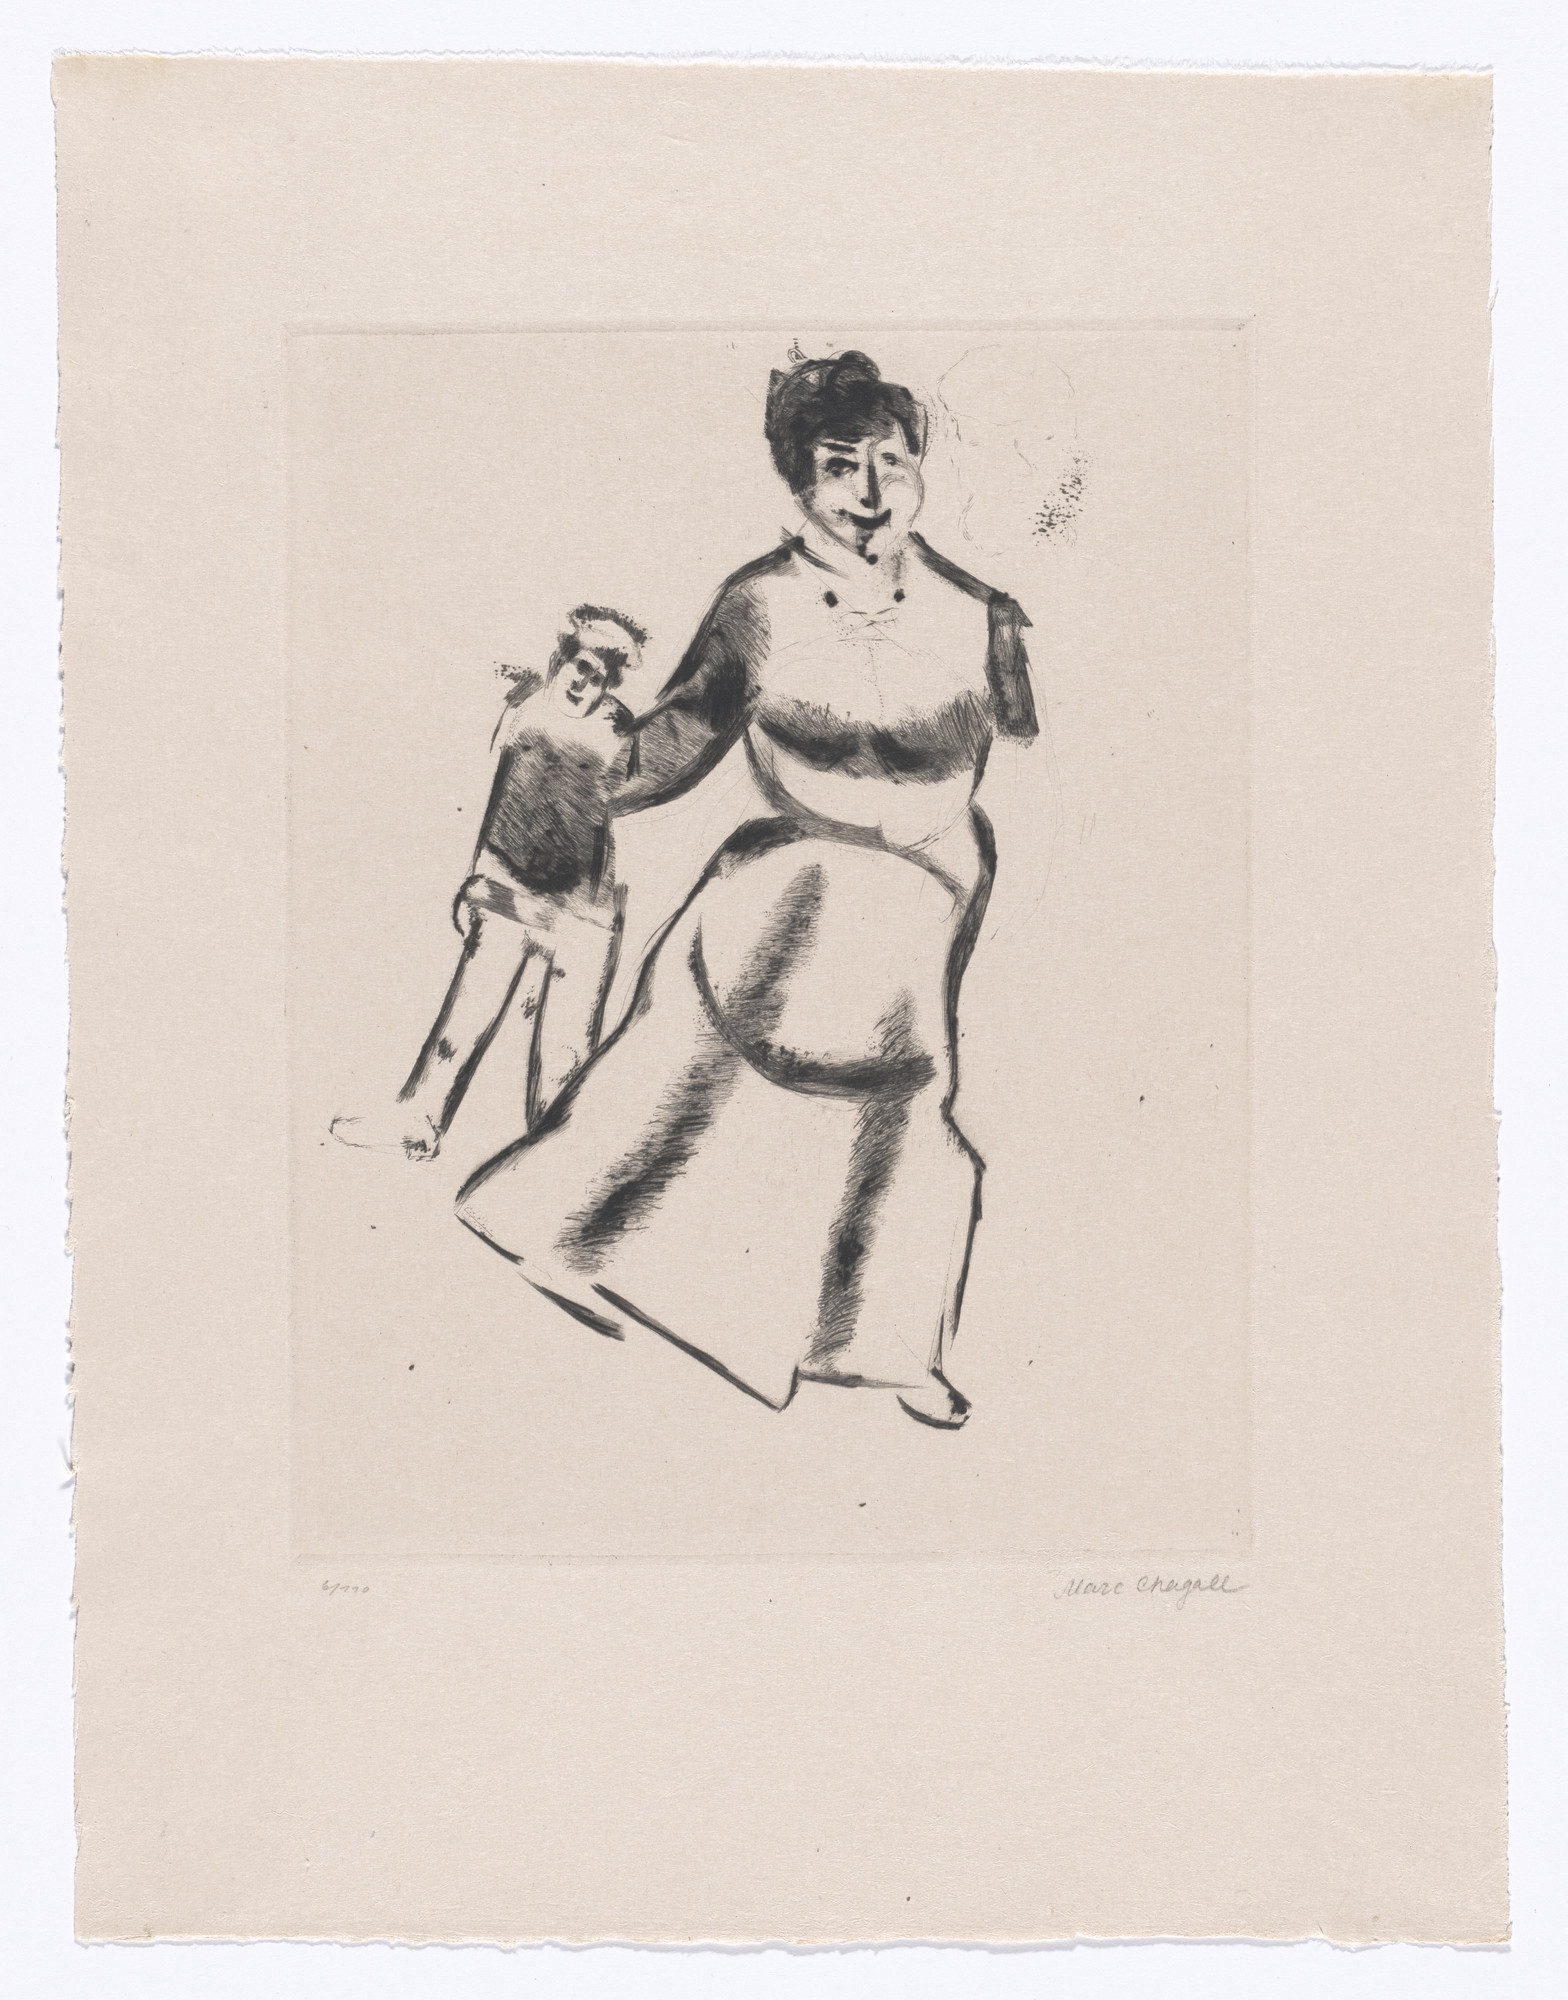 Marc Chagall. Mutter und Sohn (Mother and Son) from My Life (Mein Leben). 1922, published 1923